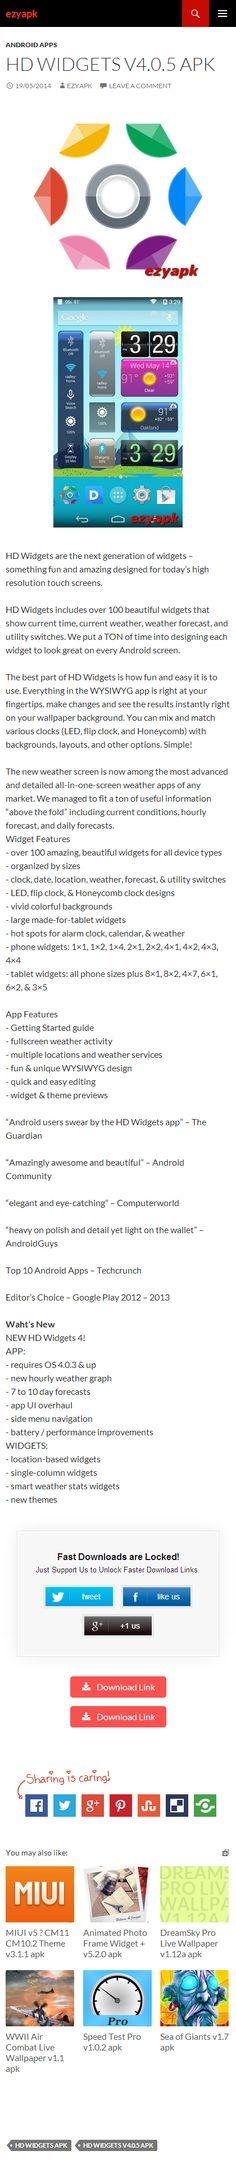 Android Apps HD Widgets v4.0.5 apk - ezyapk HD Widgets are the next generation of widgets - something fun and amazing designed for today's high resolution touch screens. Show current time, weather etc http://www.ezyapk.com/android-apps/hd-widgets-v4-0-5-apk/